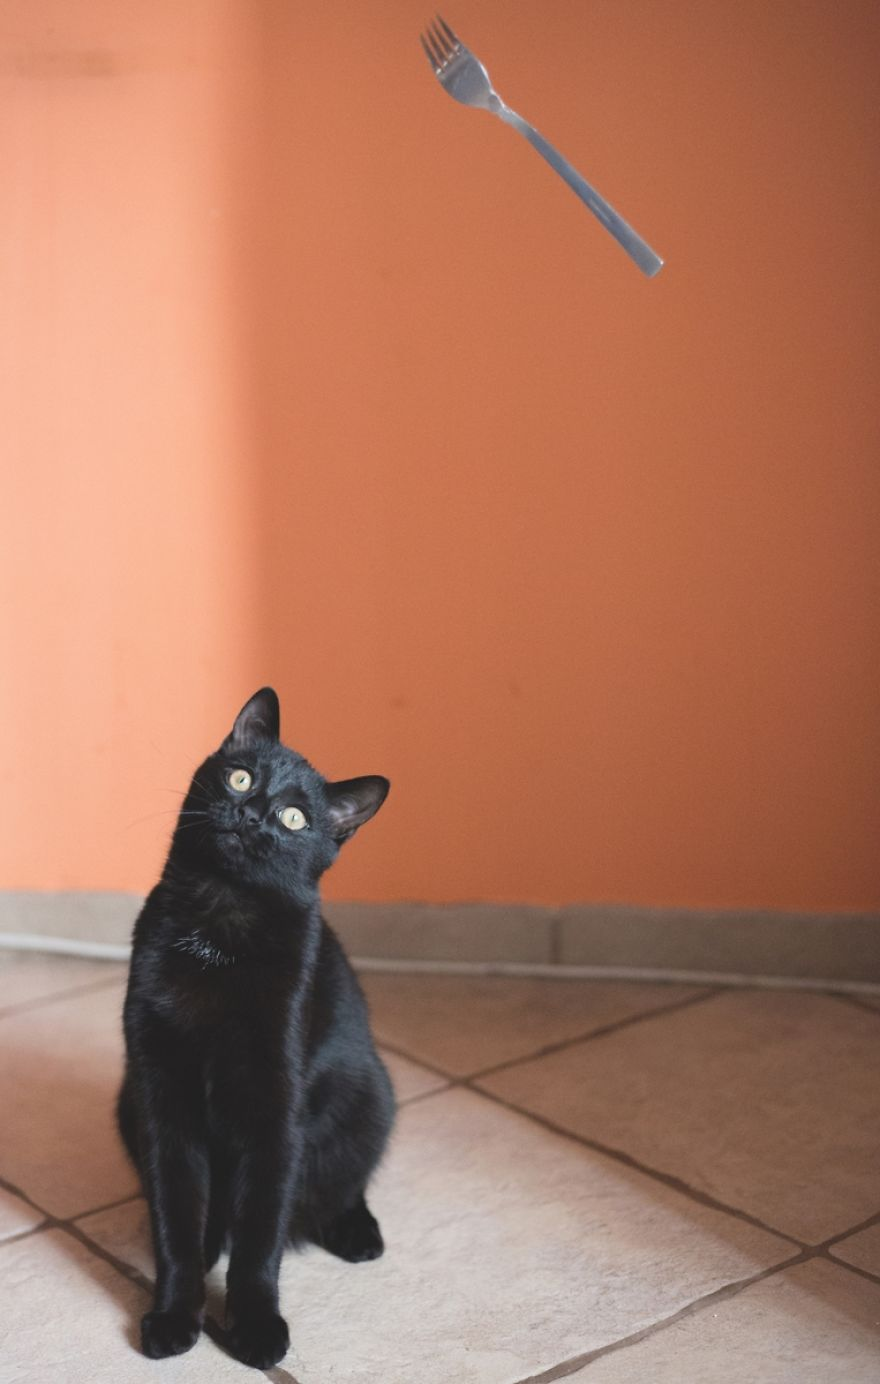 Black Cats Don't Have Anything To Do With Bad Luck